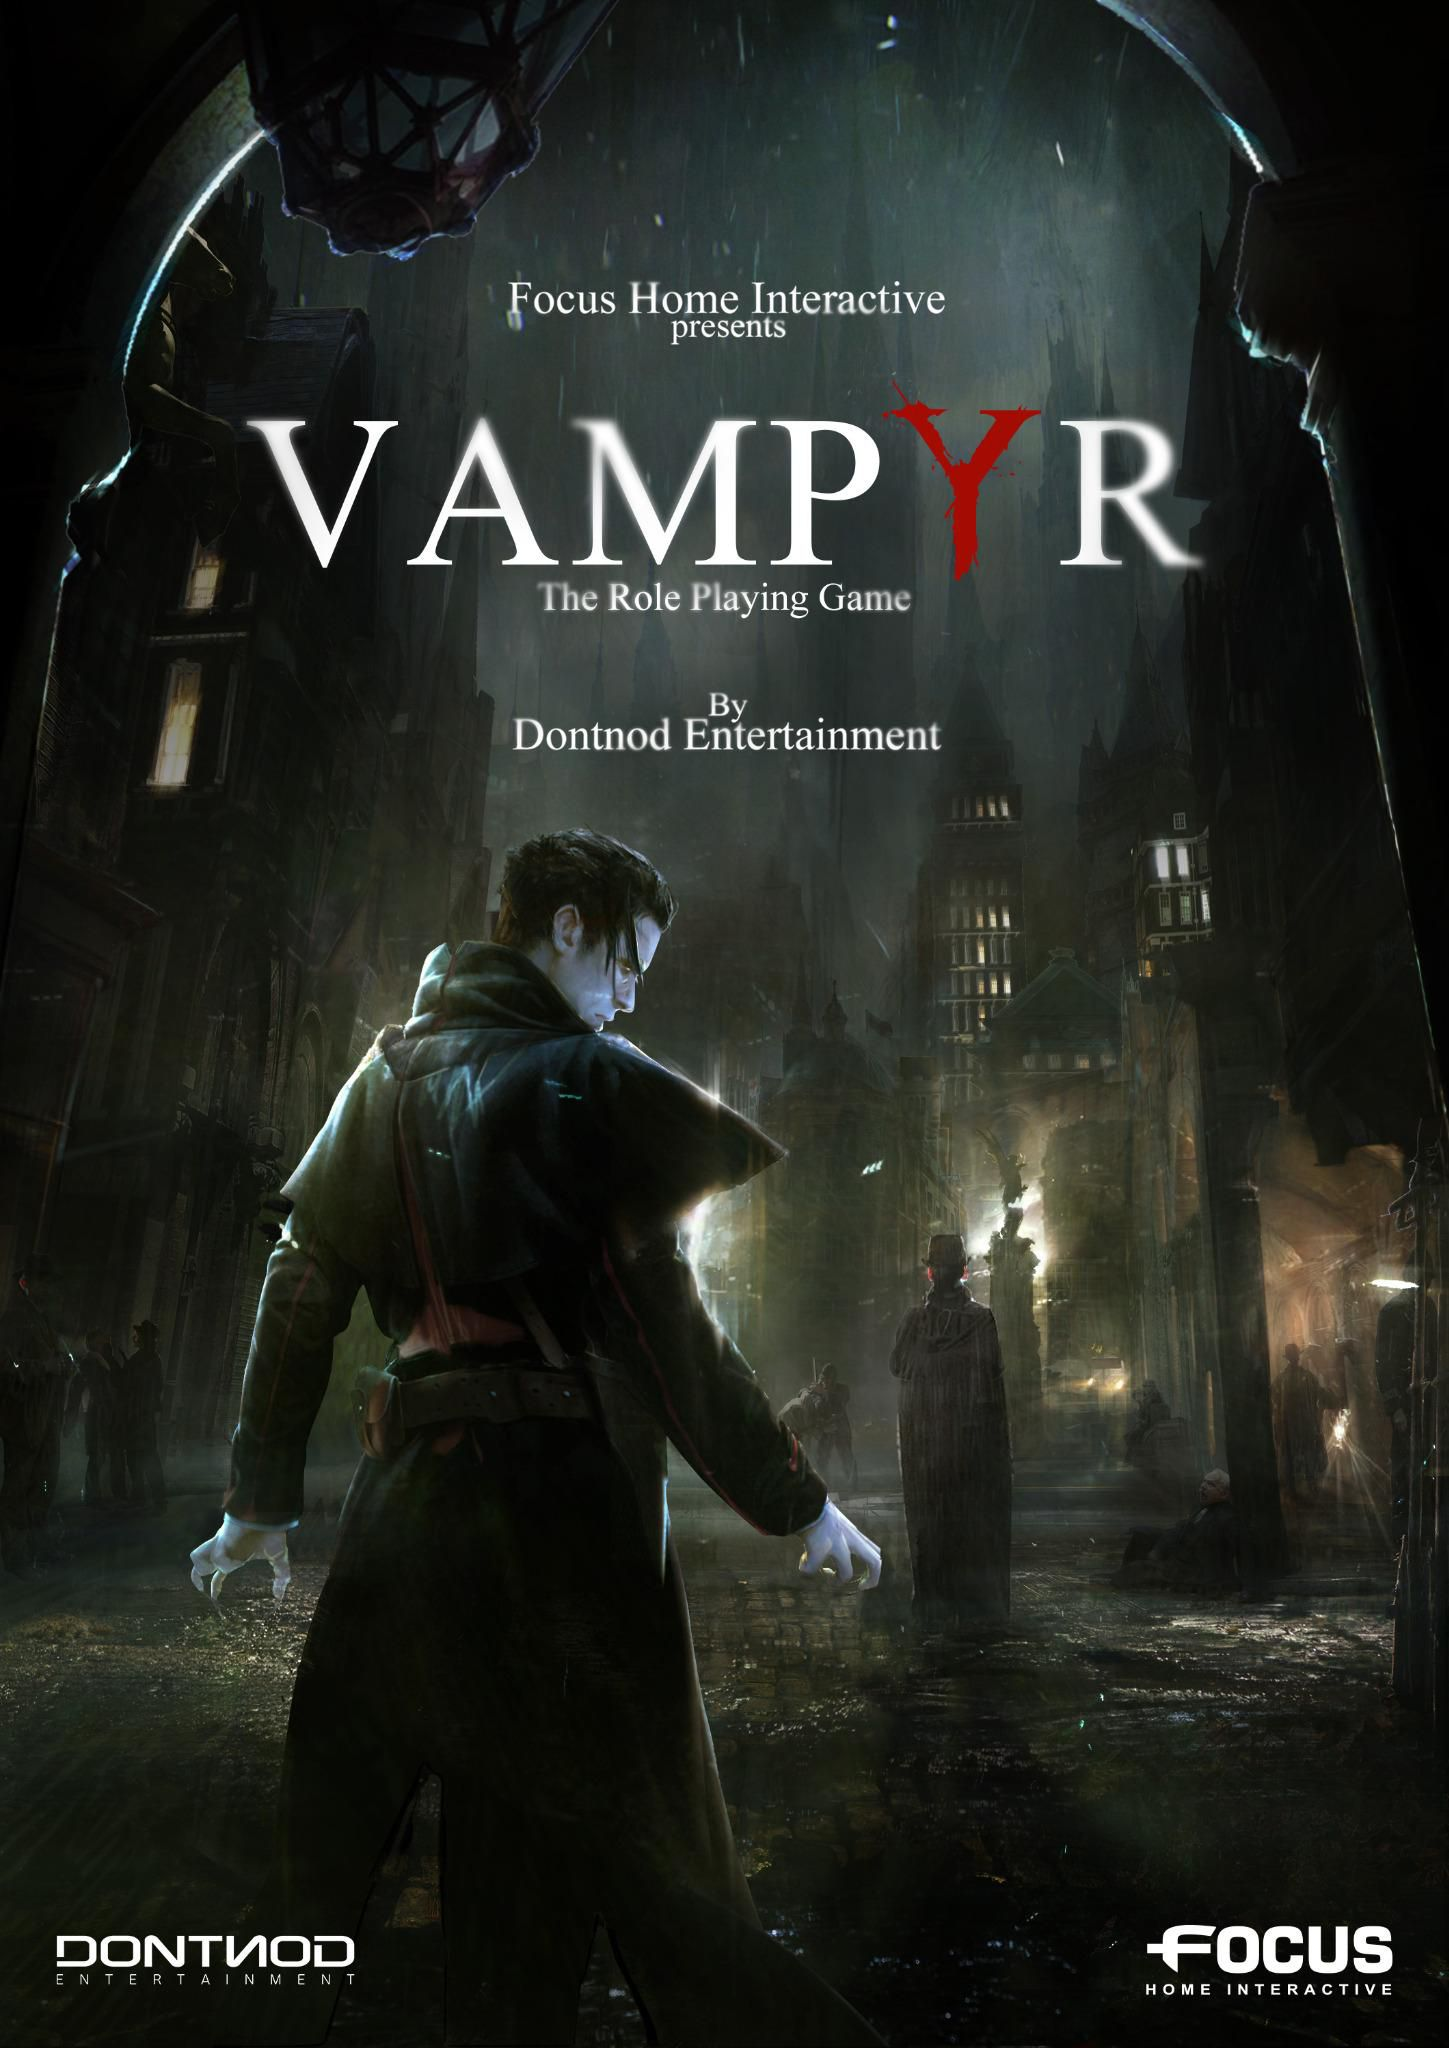 https://img5.downloadha.com/hosein/files/2018/06/Vampyr-pc-cover-large.jpg